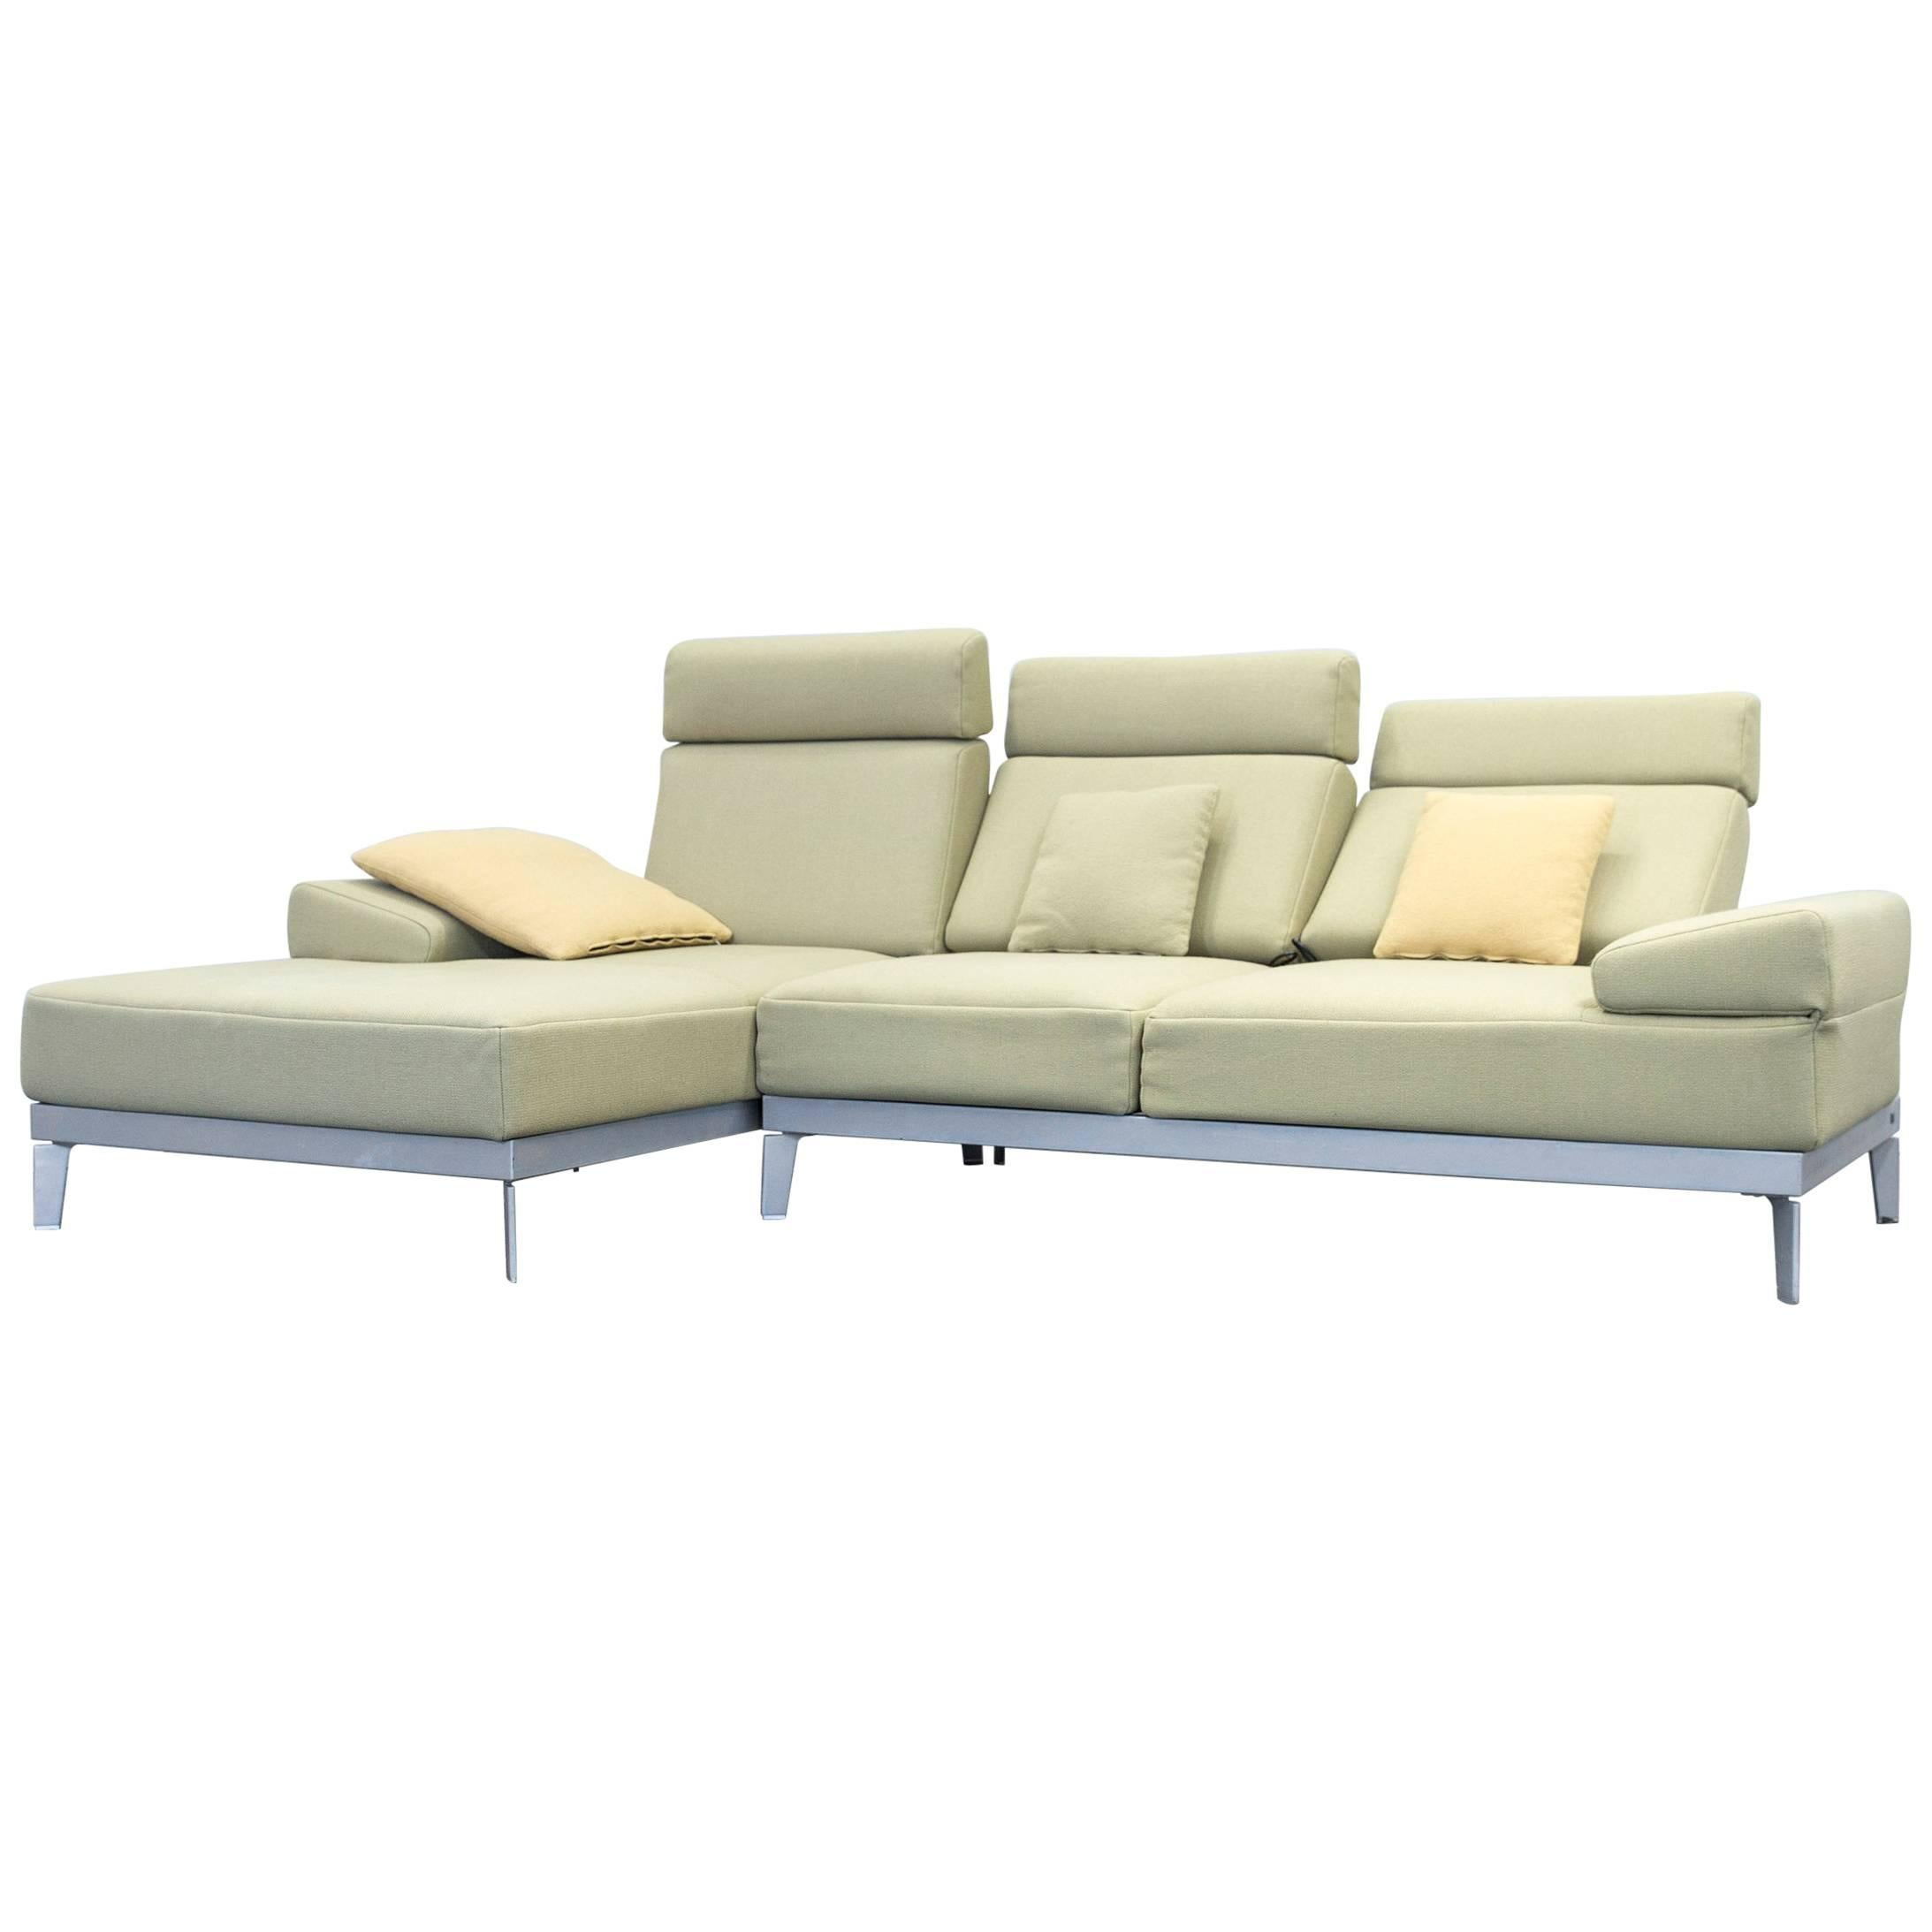 Rolf Benz Plura Sofa Affordable Rolf Benz Plura Sofa With Rolf Benz